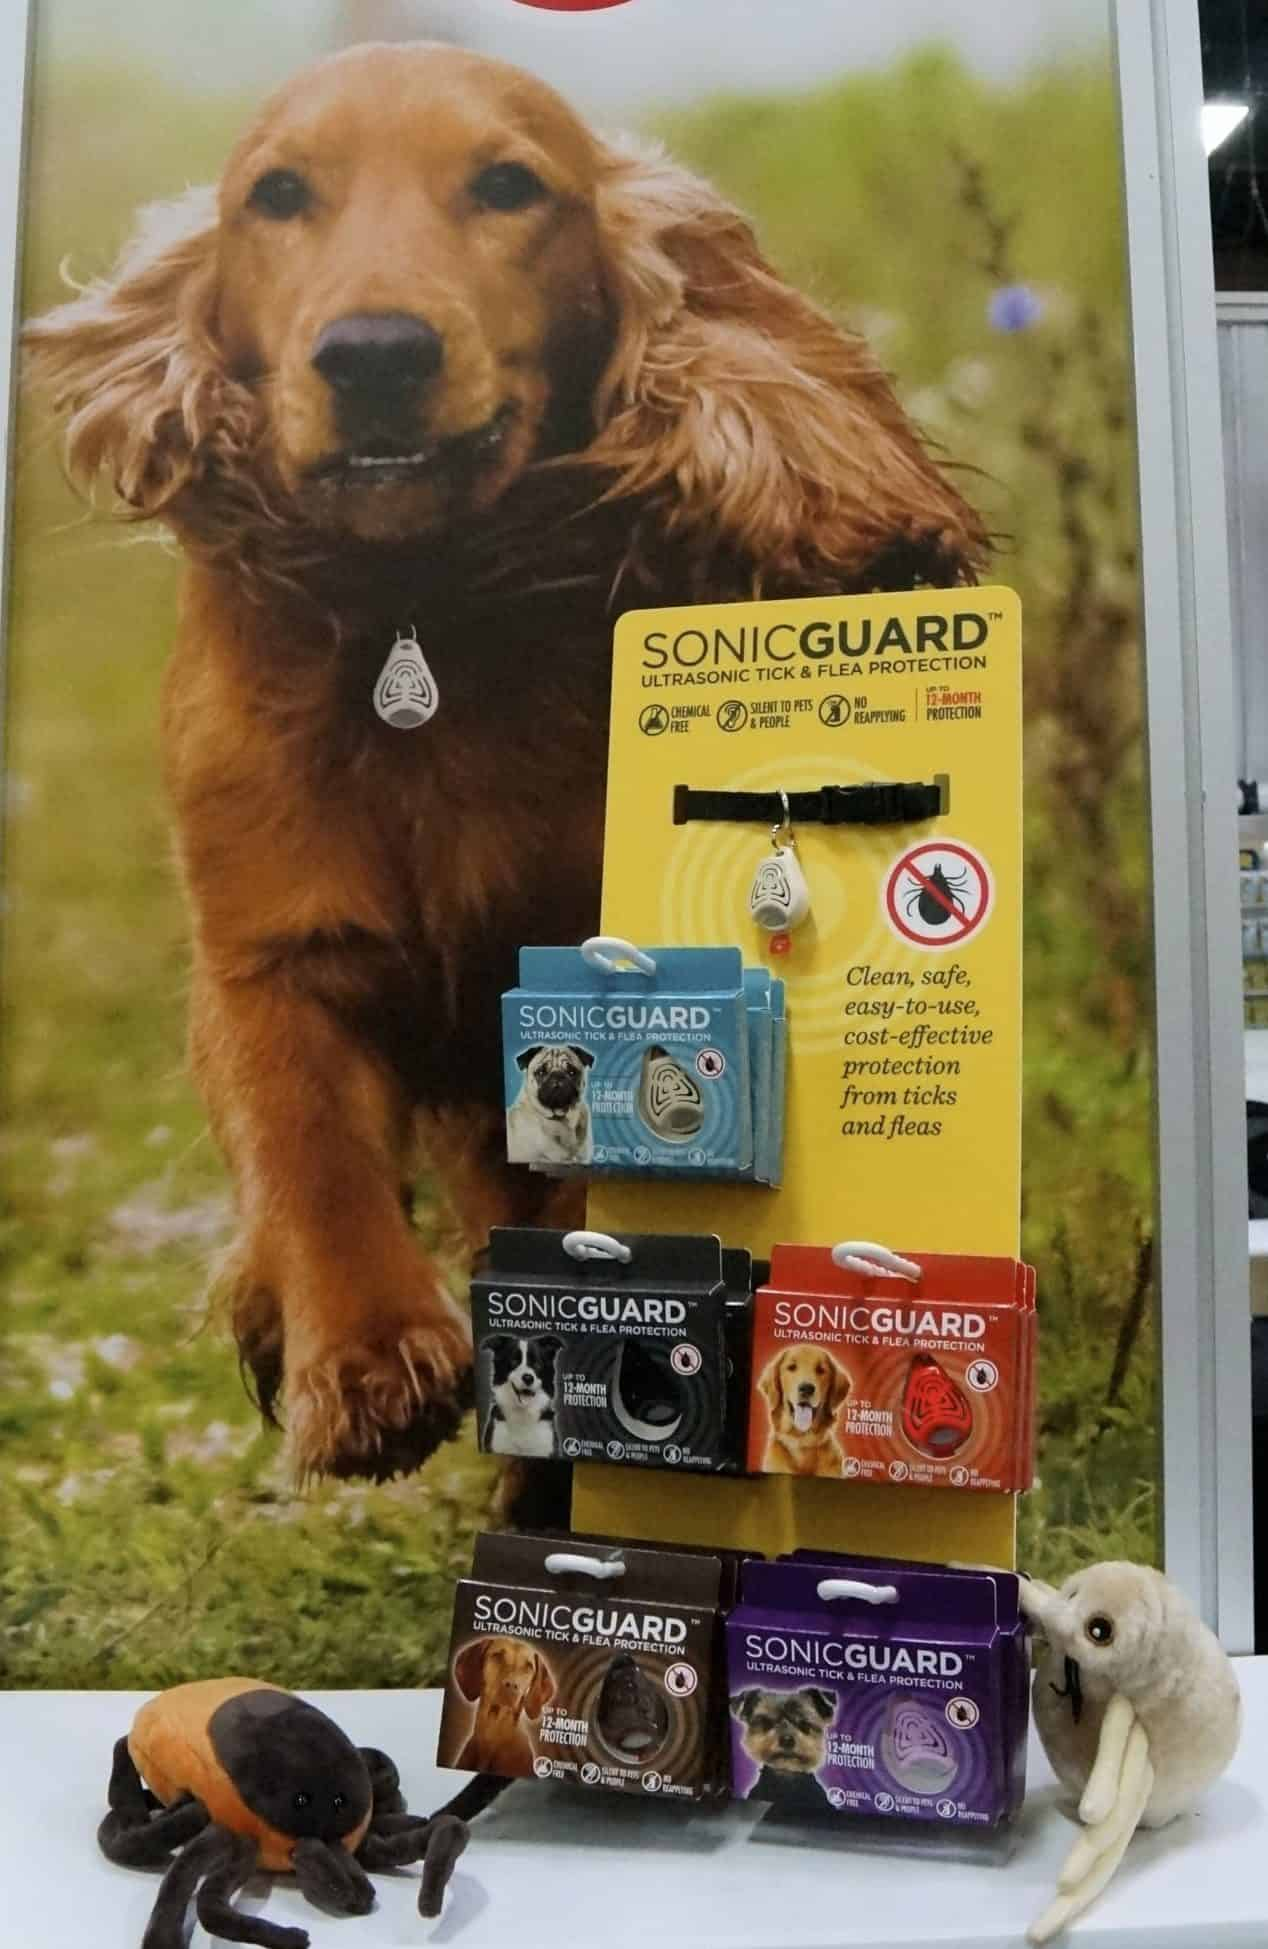 SuperZoo 2016 - SonicGuard Flea and Tick Protection - GoPetFriendly.com